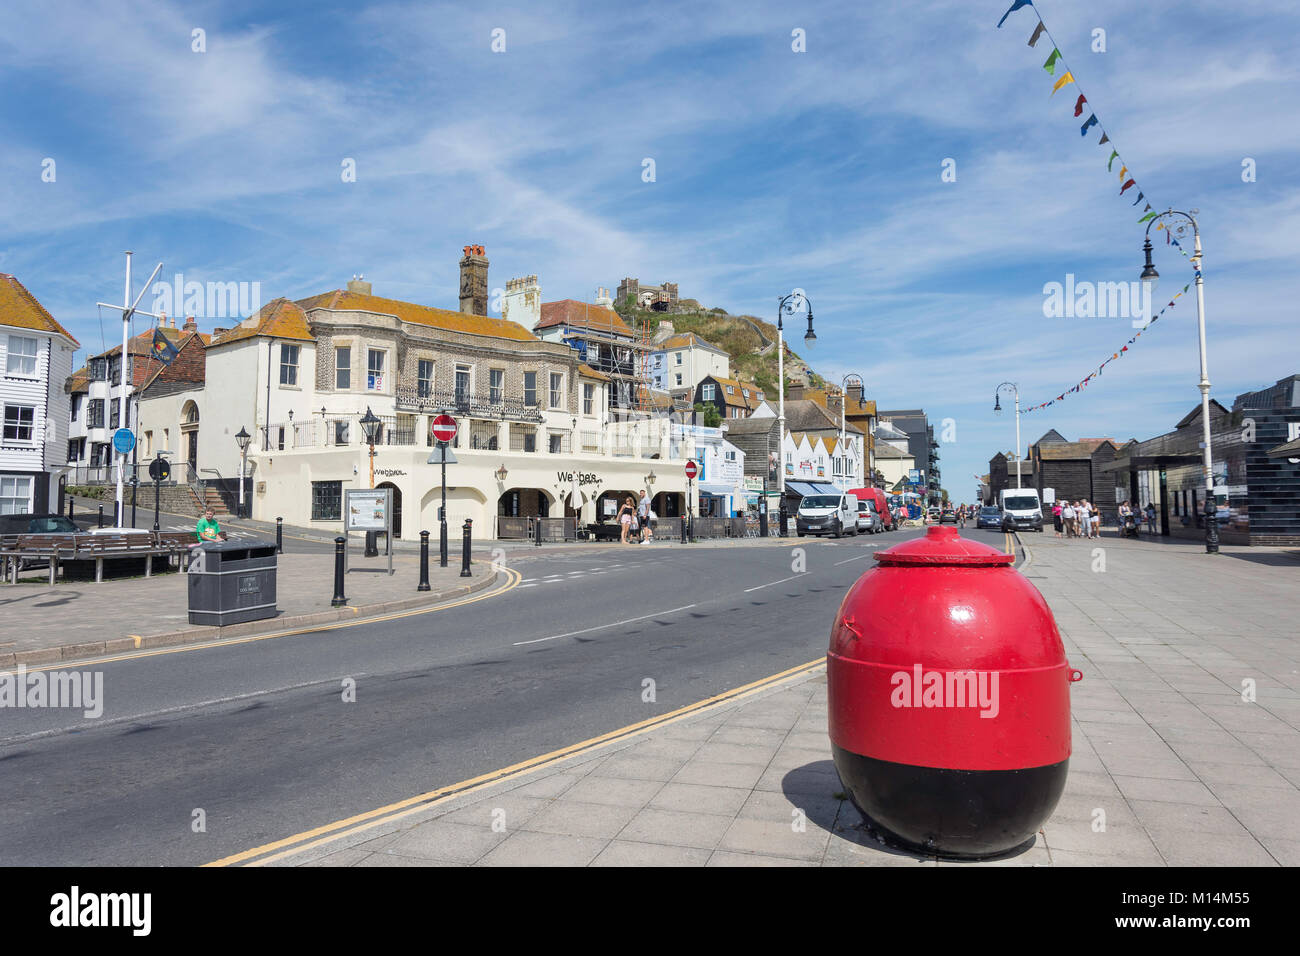 Rock-a-Nore Road, Hastings, East Sussex, England, United Kingdom - Stock Image